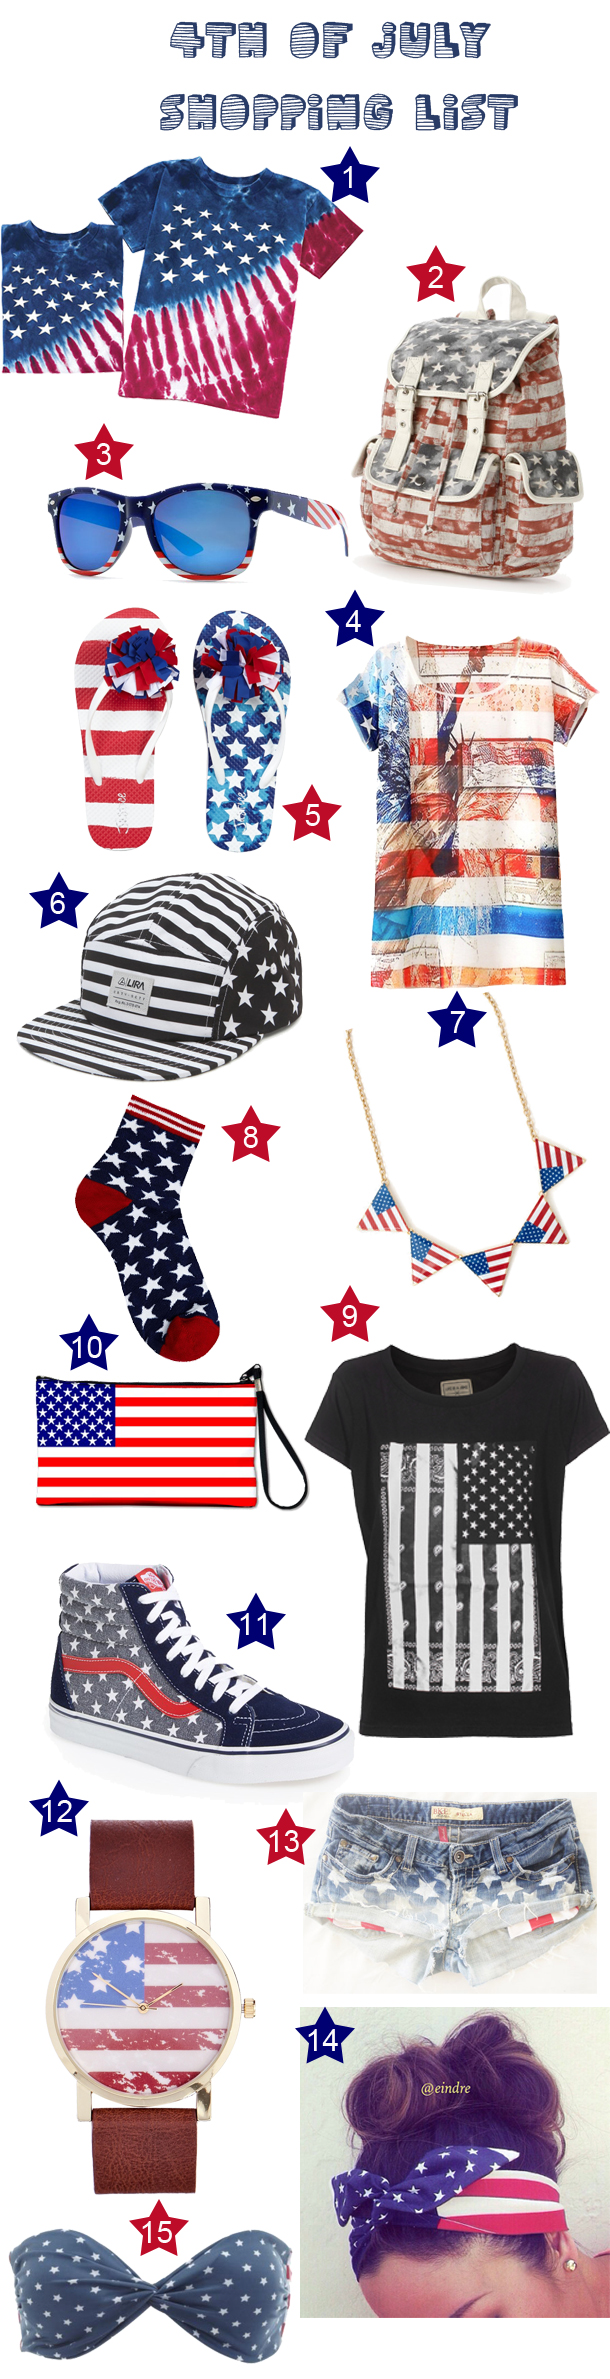 4th-july-list-of-shopping-stars-and-stripes-american-flag